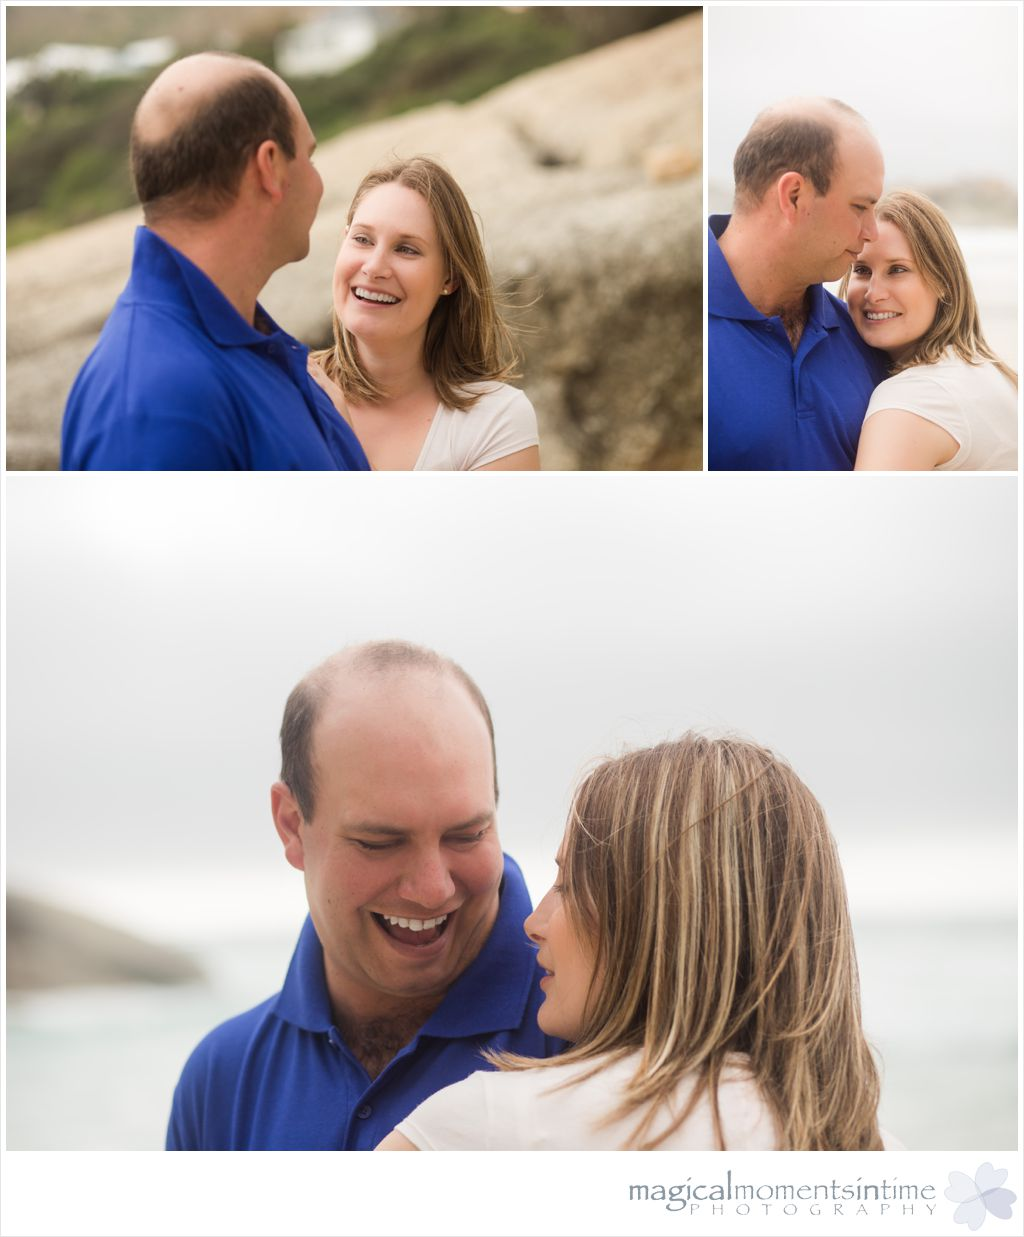 couple on the beach in llududno cape town for photoshoot